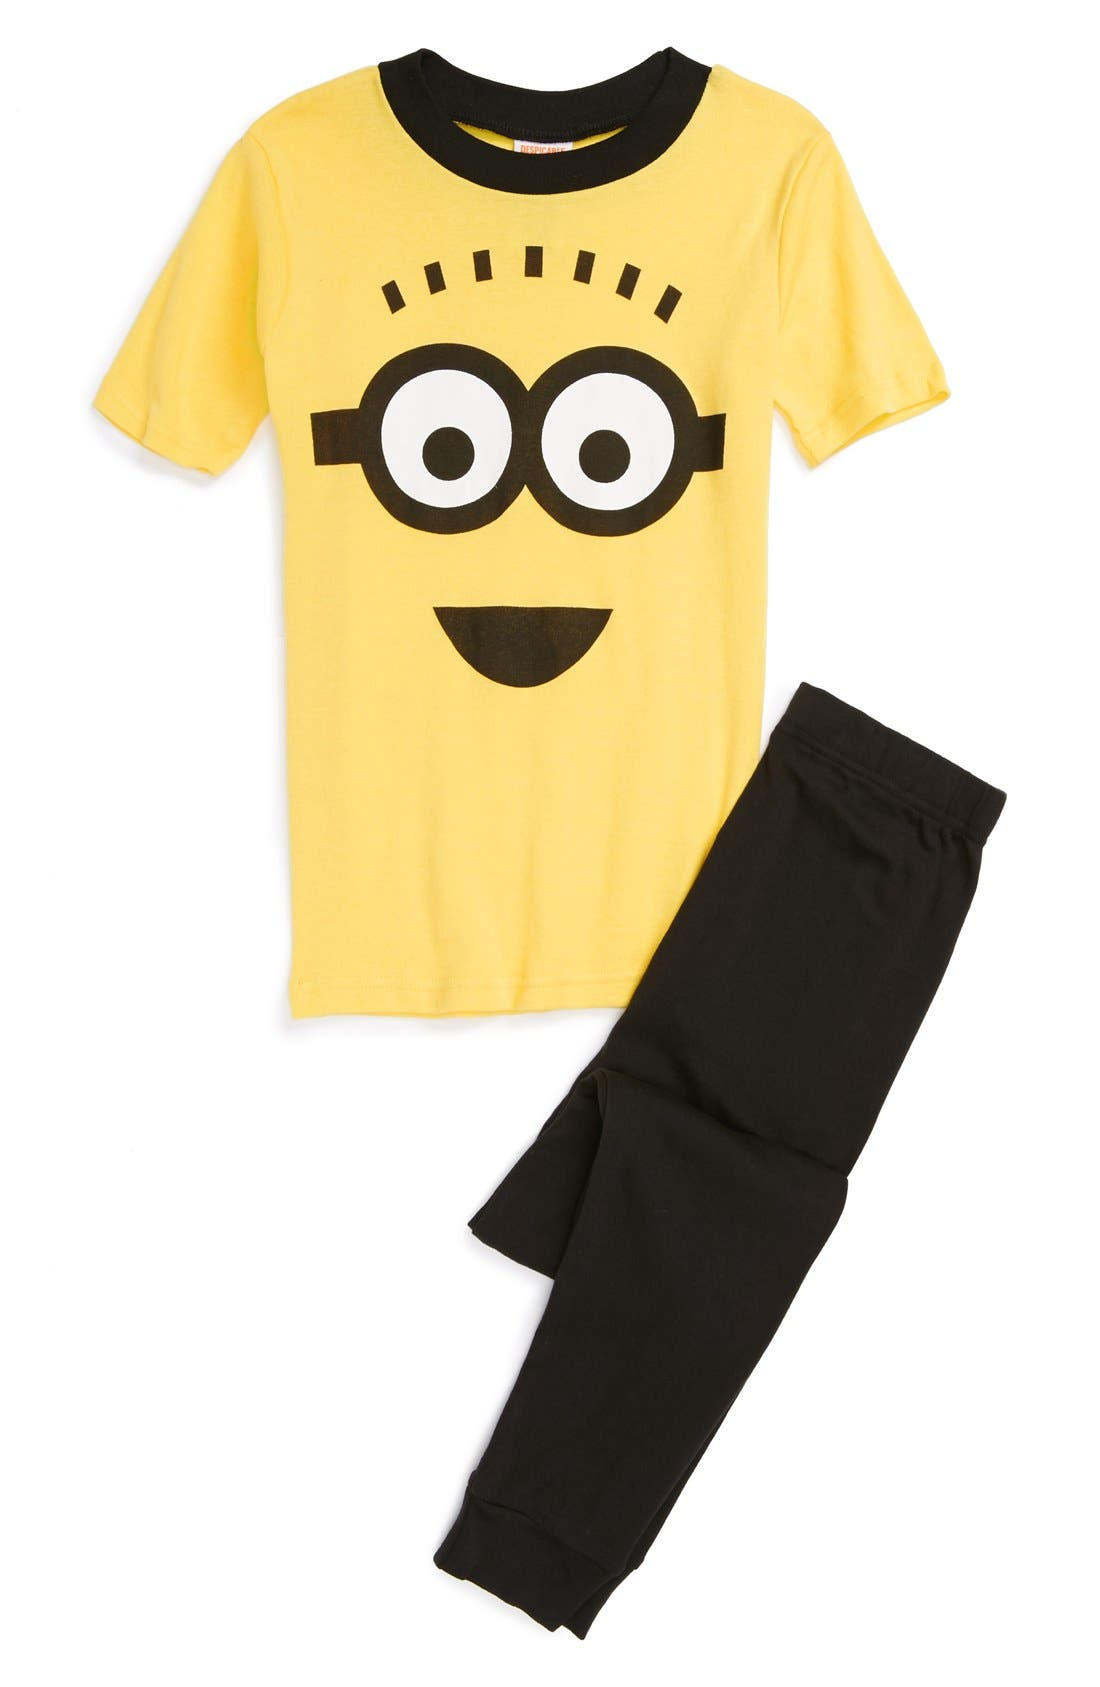 Alternate Image 1 Selected - Despicable Me 2™ 'Minion' Two-Piece Fitted Pajamas (Little Boys & Big Boys)